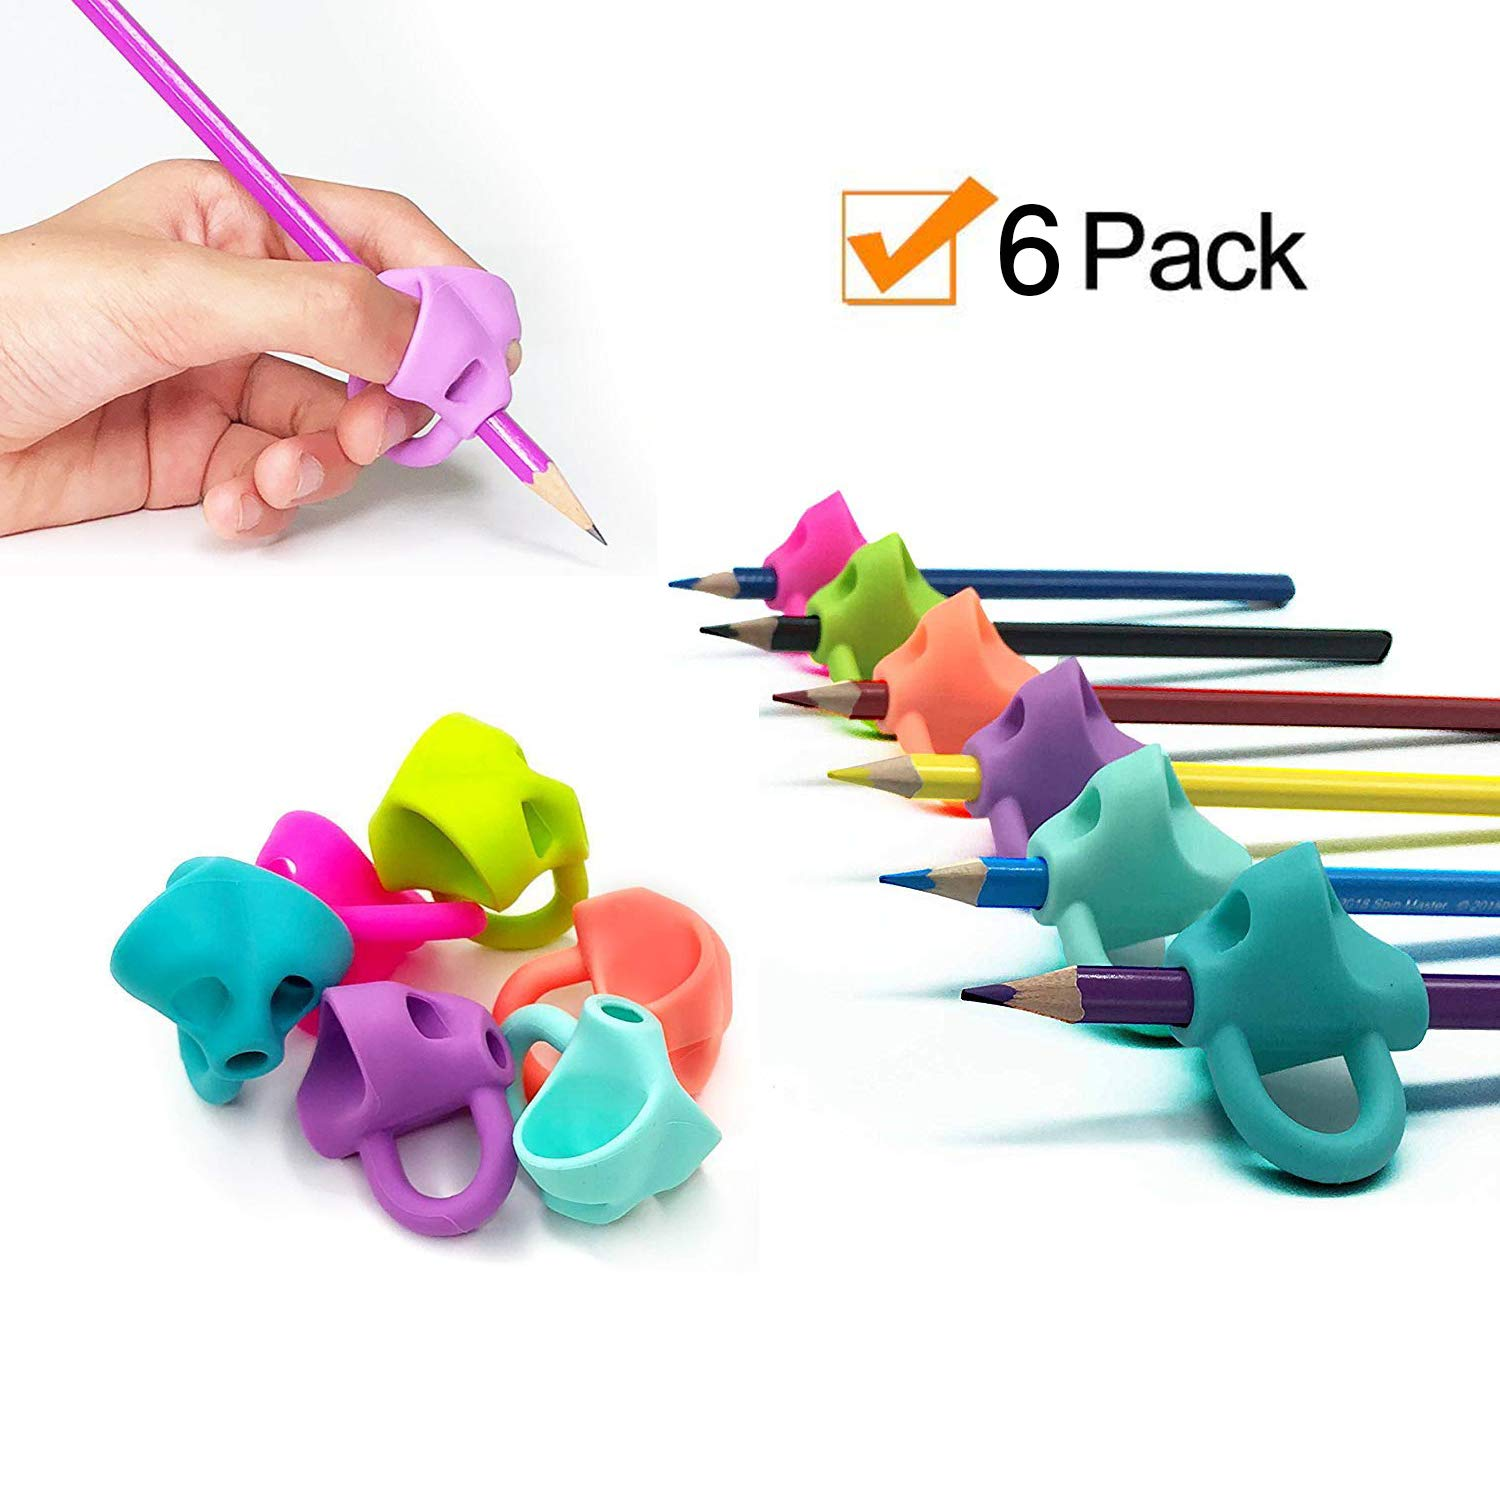 Pencil Grips Pencil Grips for Kids Handwriting for Preschool 2018 Generation New Mechanical Pencil Grip Elephant Shape For Kids Preschoolers Children Adults Special Needs for Left or Right Hand 6PCS AKEfit NA